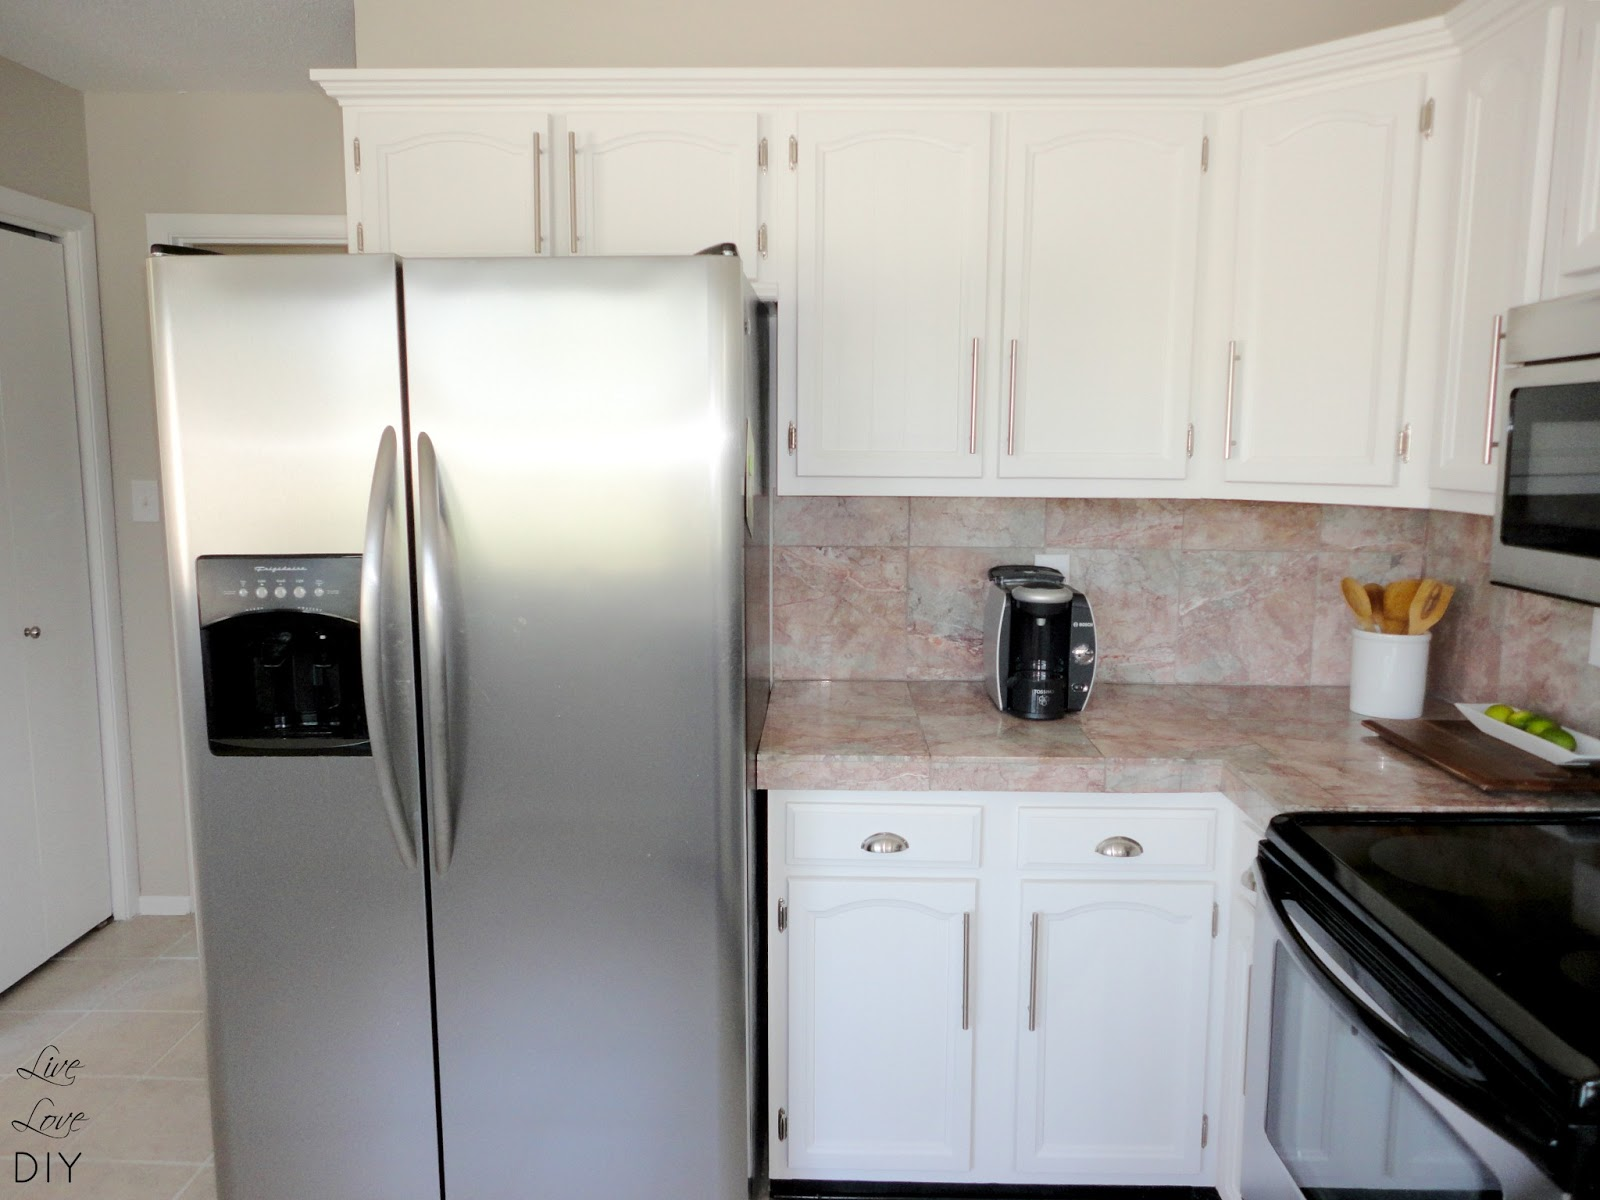 10 easy steps to paint kitchen cabinets cheap kitchen cabinets 10 steps to paint your kitchen cabinets the easy way an easy tutorial anyone can